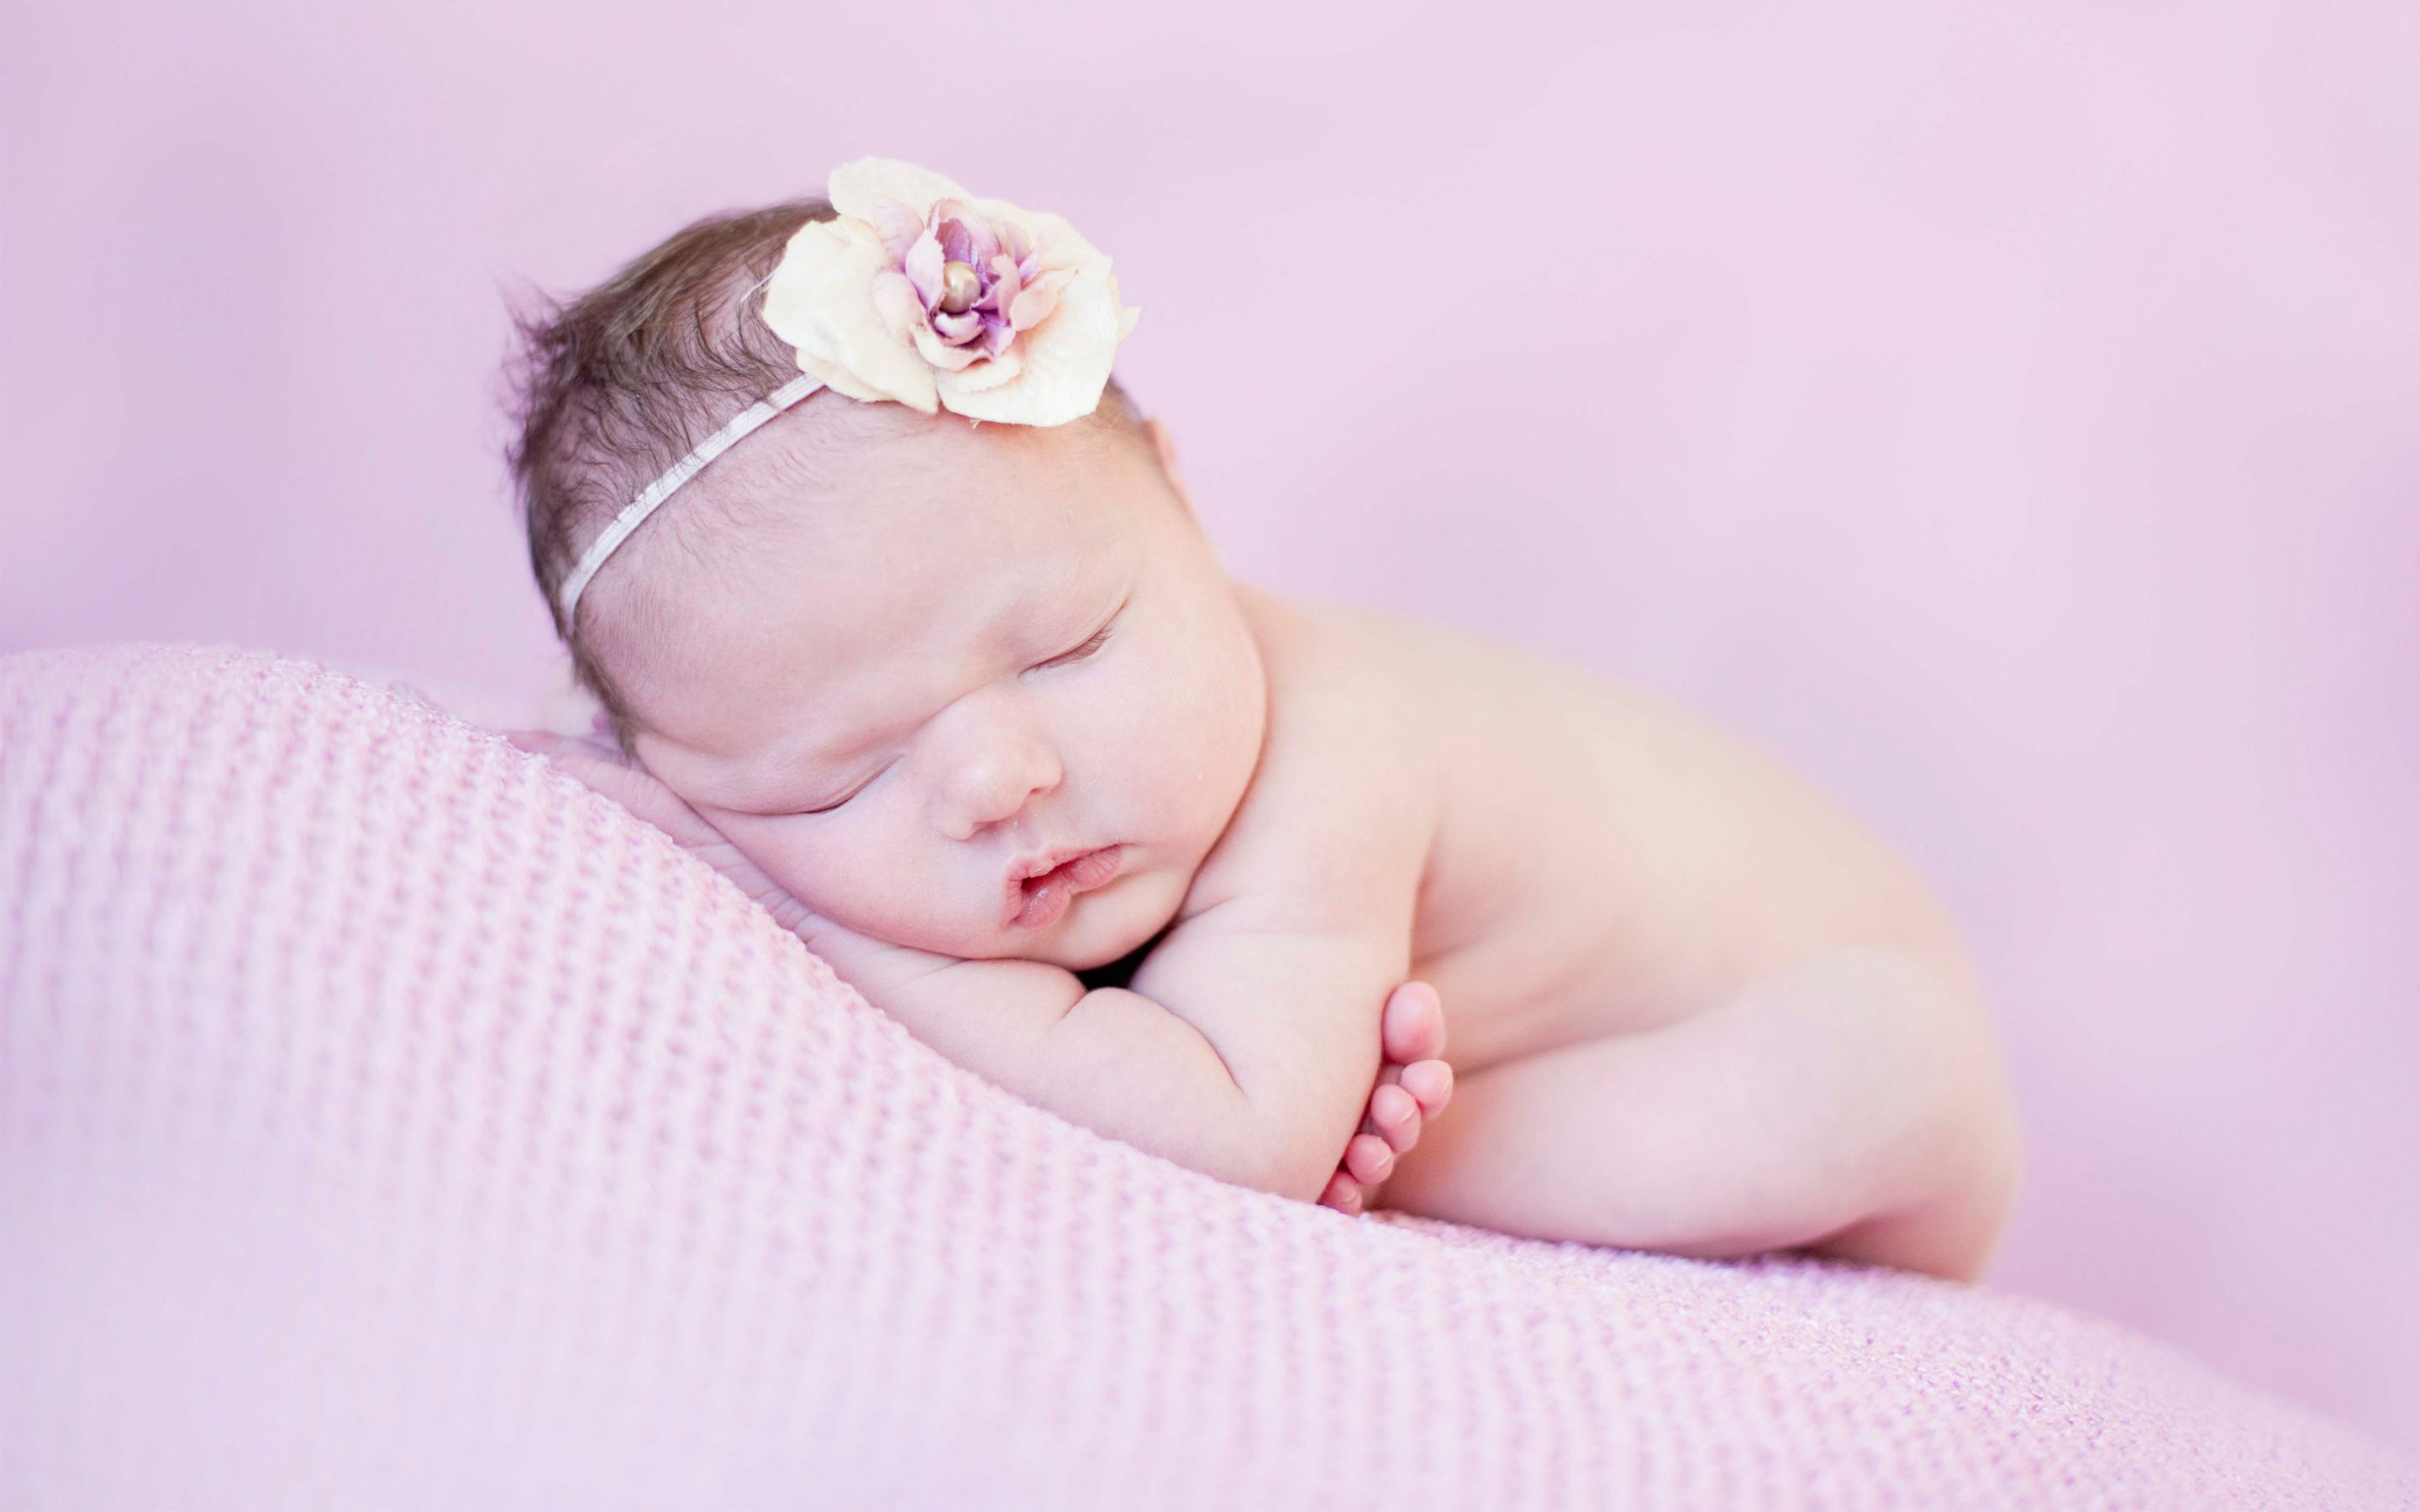 Cute Newborn Babies Wallpapers Wide with High Resolution x px 4 00